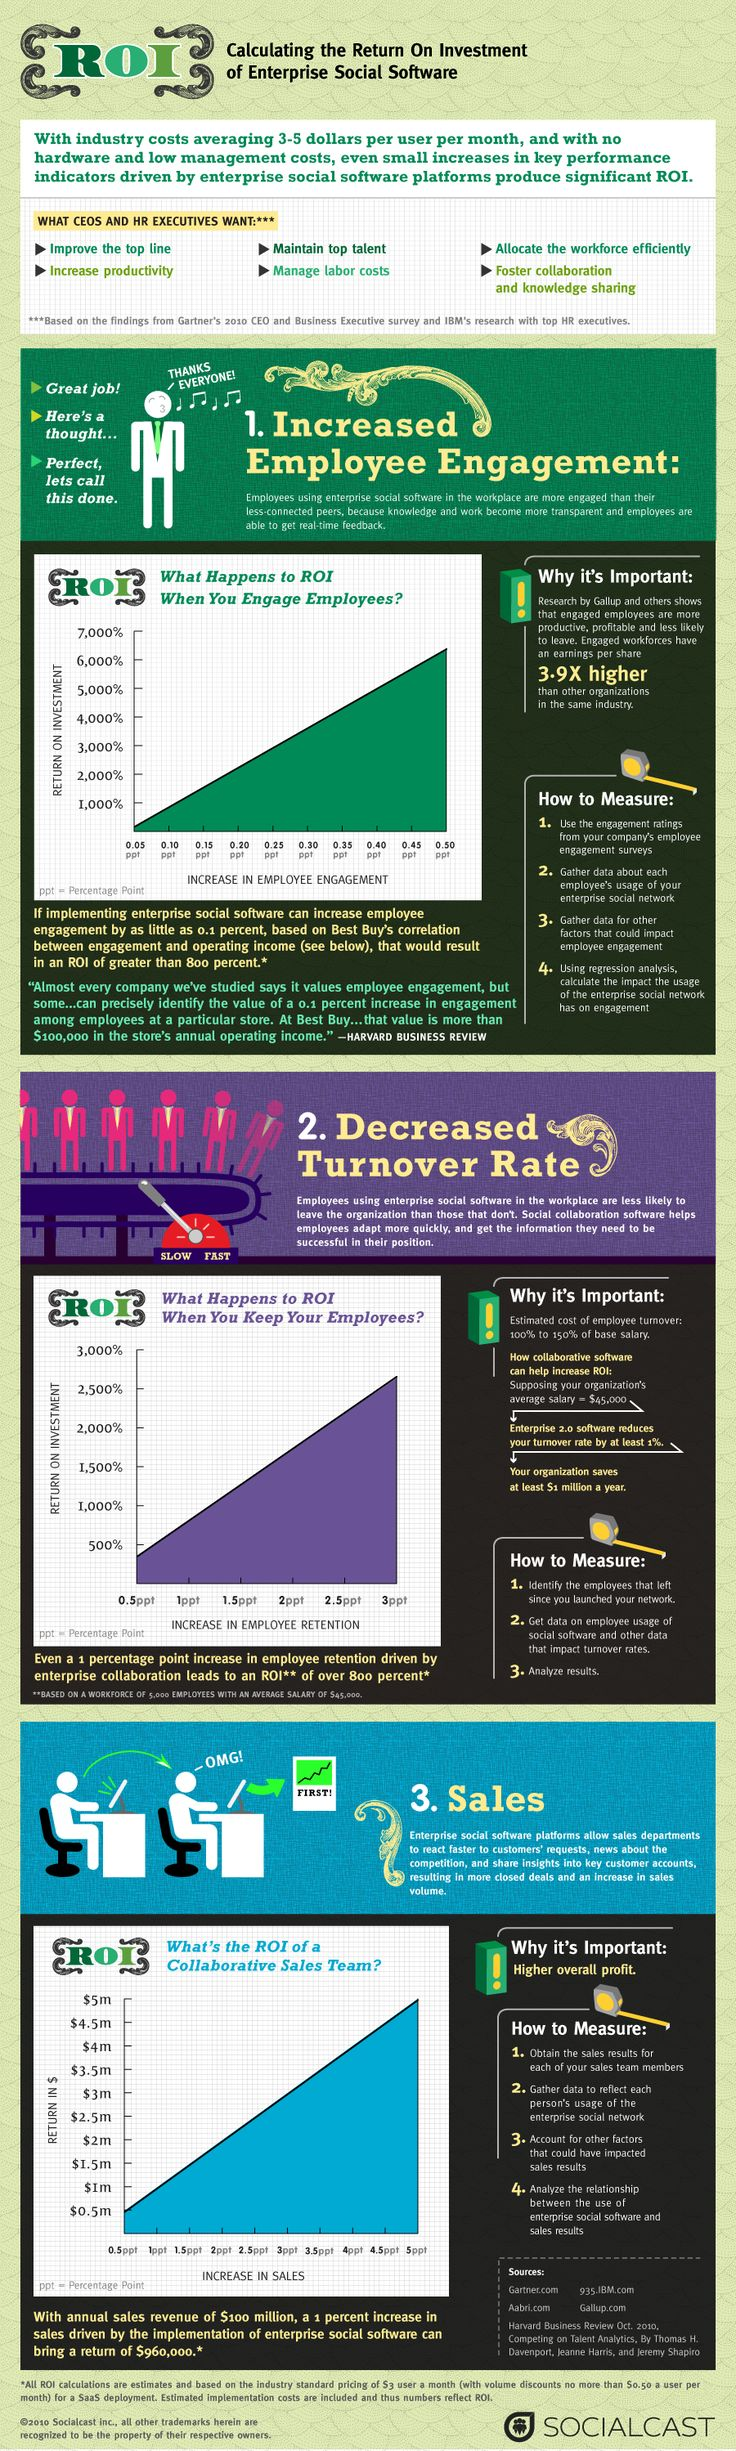 How To Calculate the ROI of Enterprise 2.0 >> Great infographic!